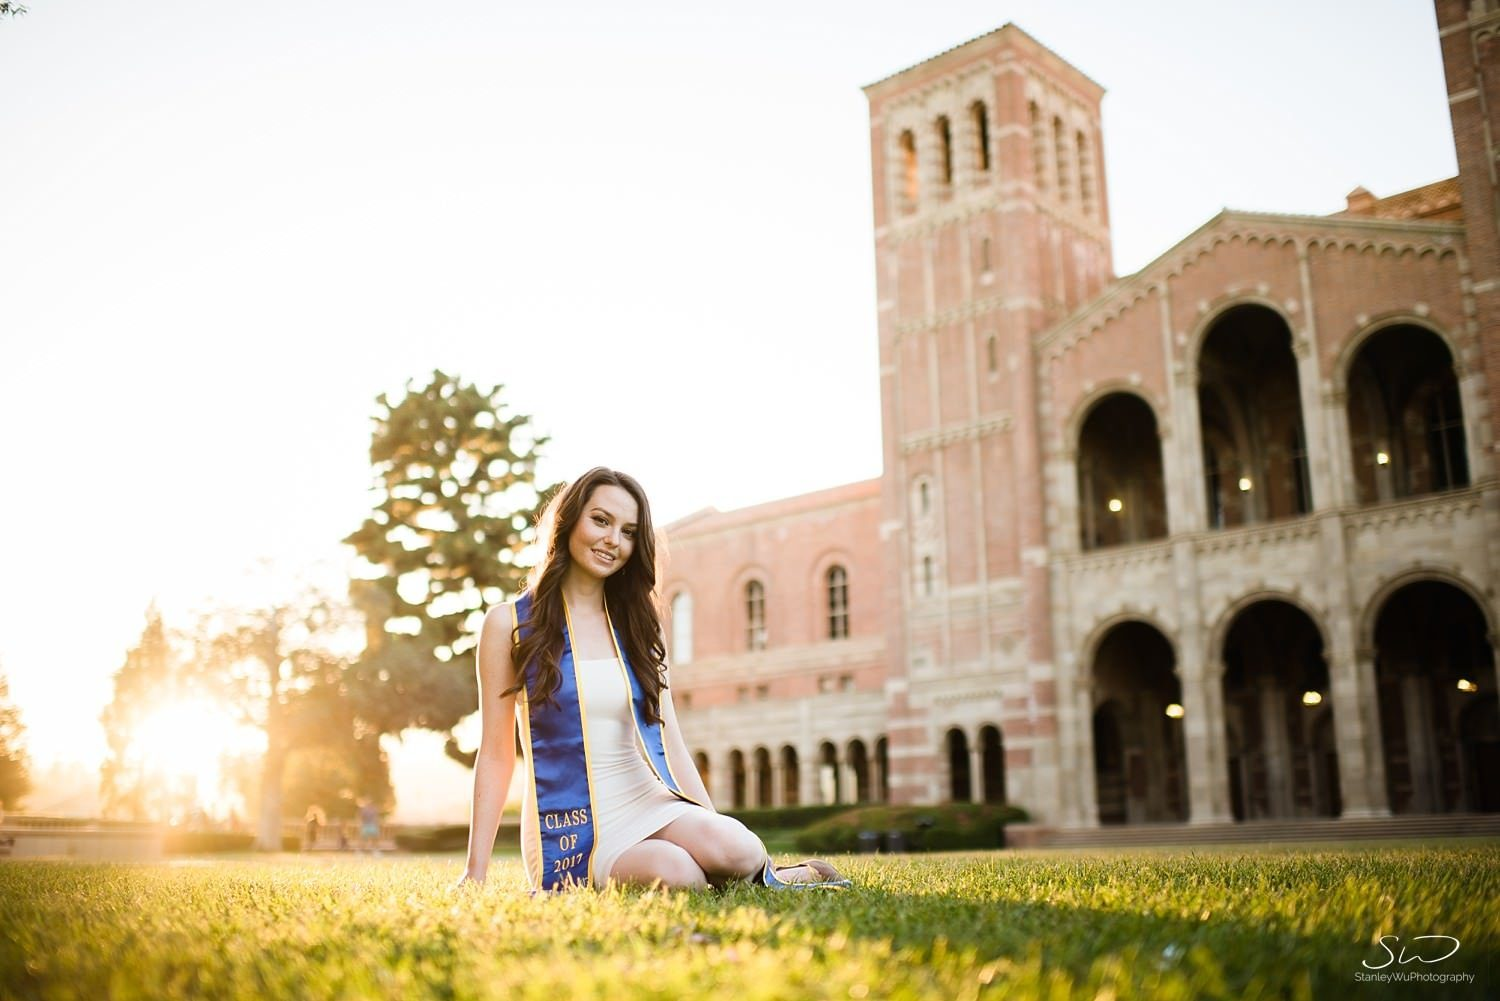 los angeles ucla senior graduation portraits 0016 1